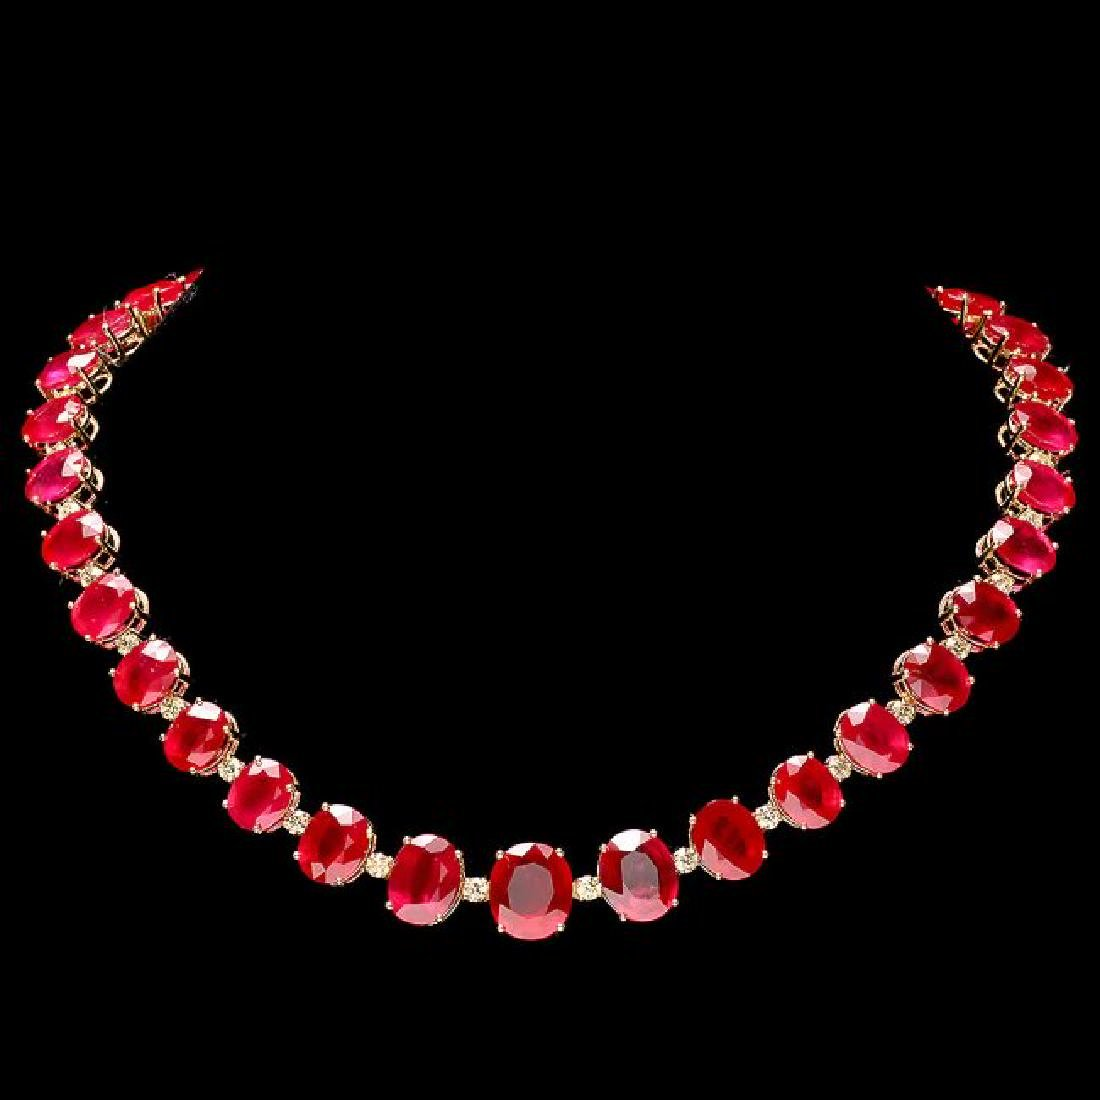 14k Gold 137ct Ruby 4.15ct Diamond Necklace